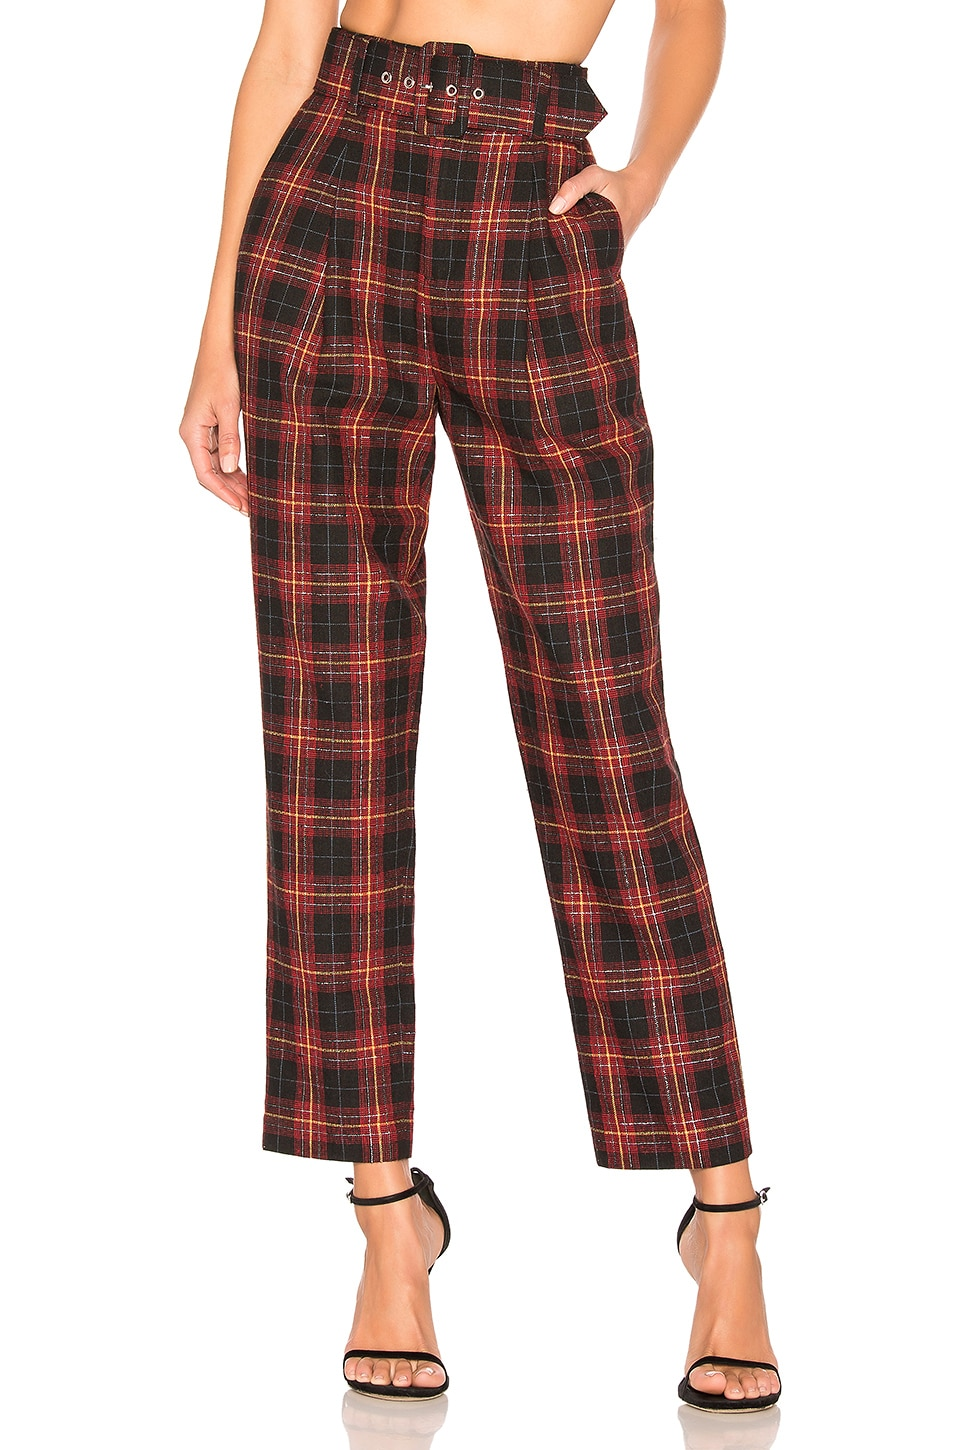 L'Academie The Betty Pant in Black & Red